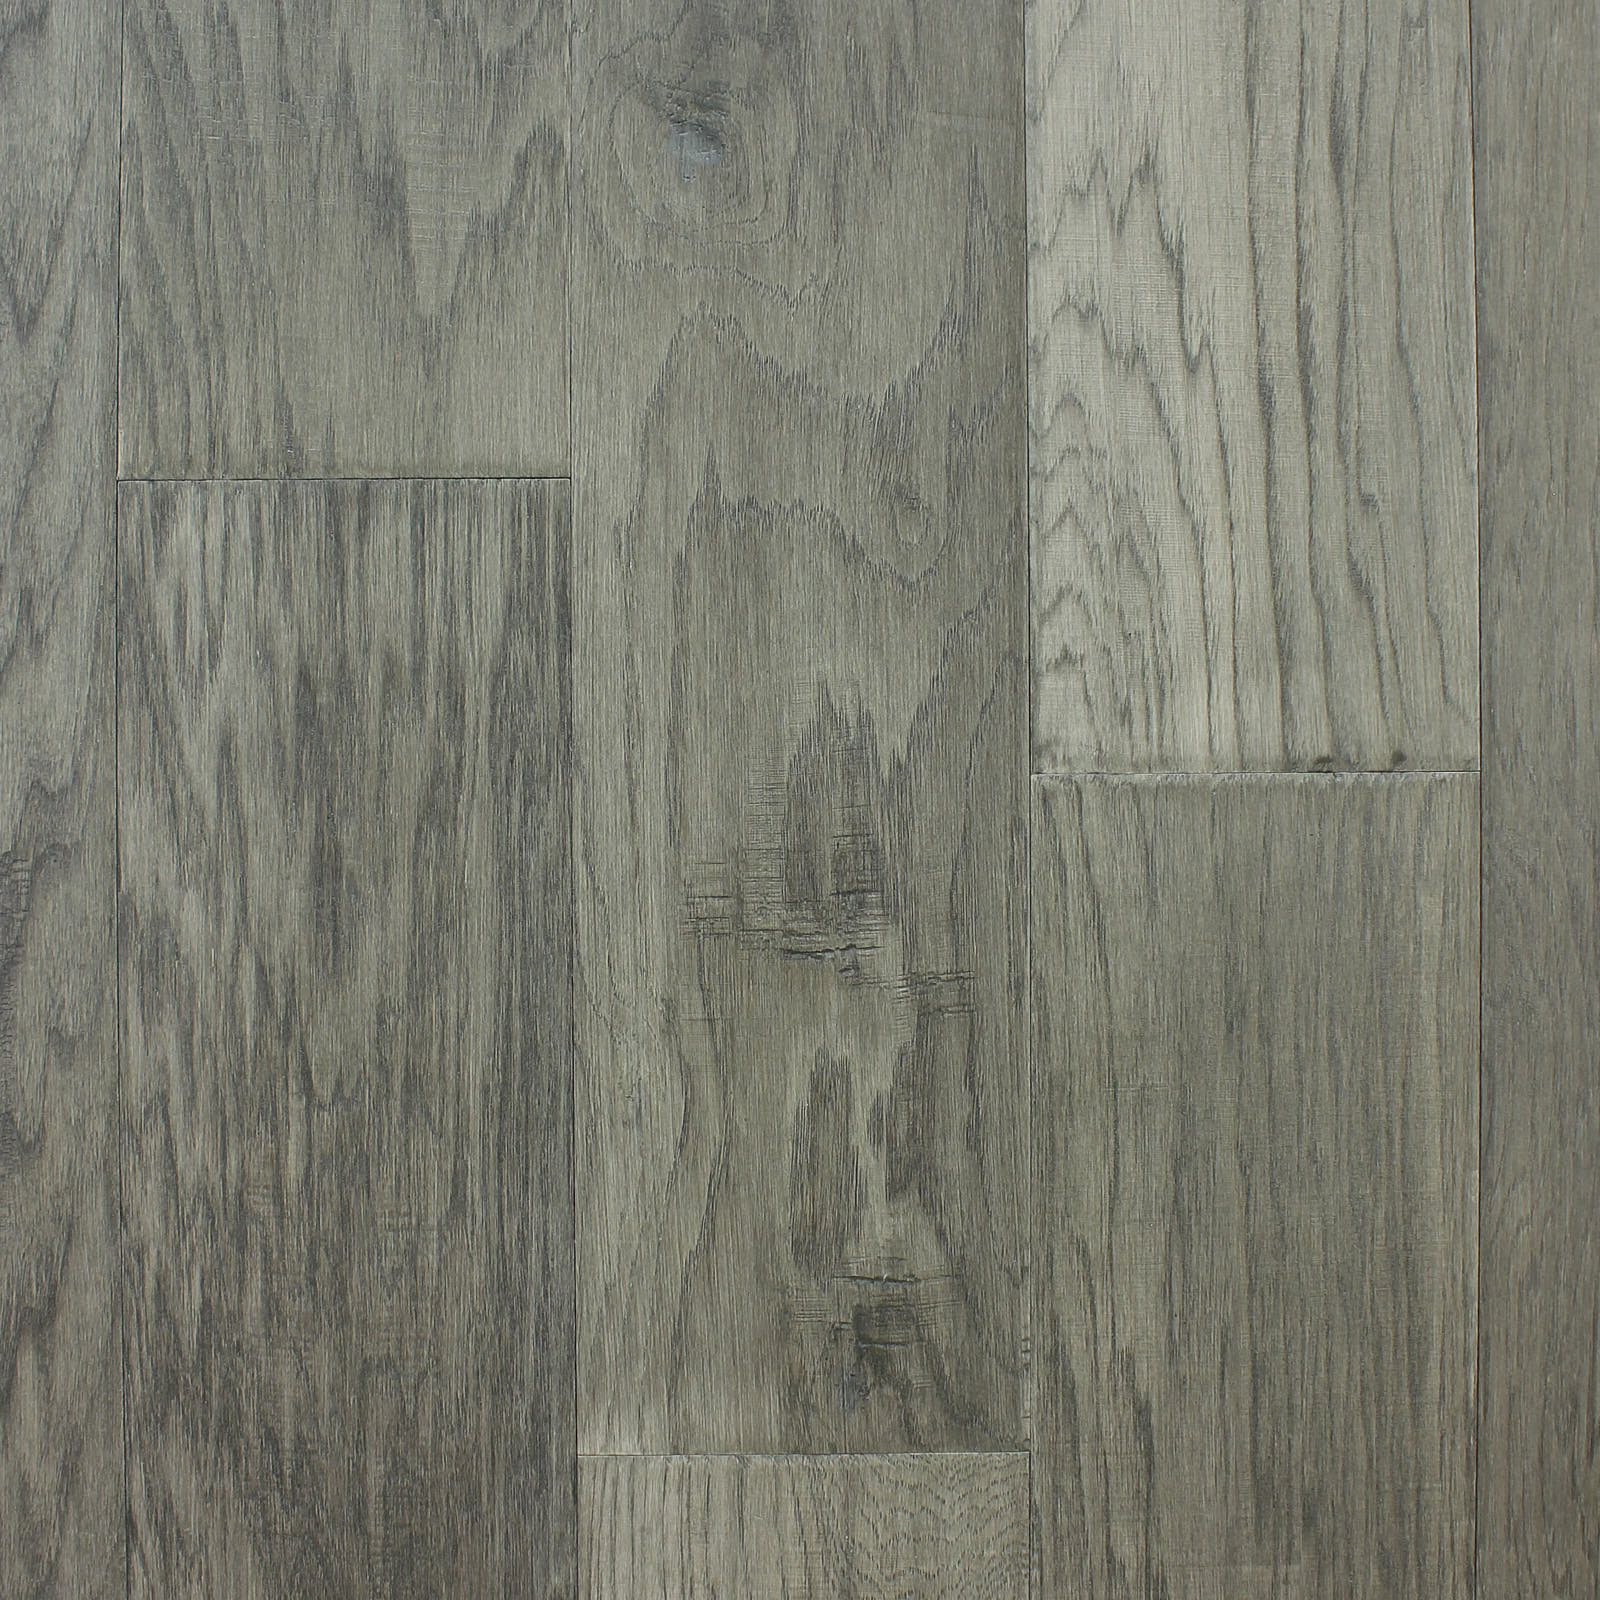 Wrangler Plank Rossette Engineered Hardwood Flooring